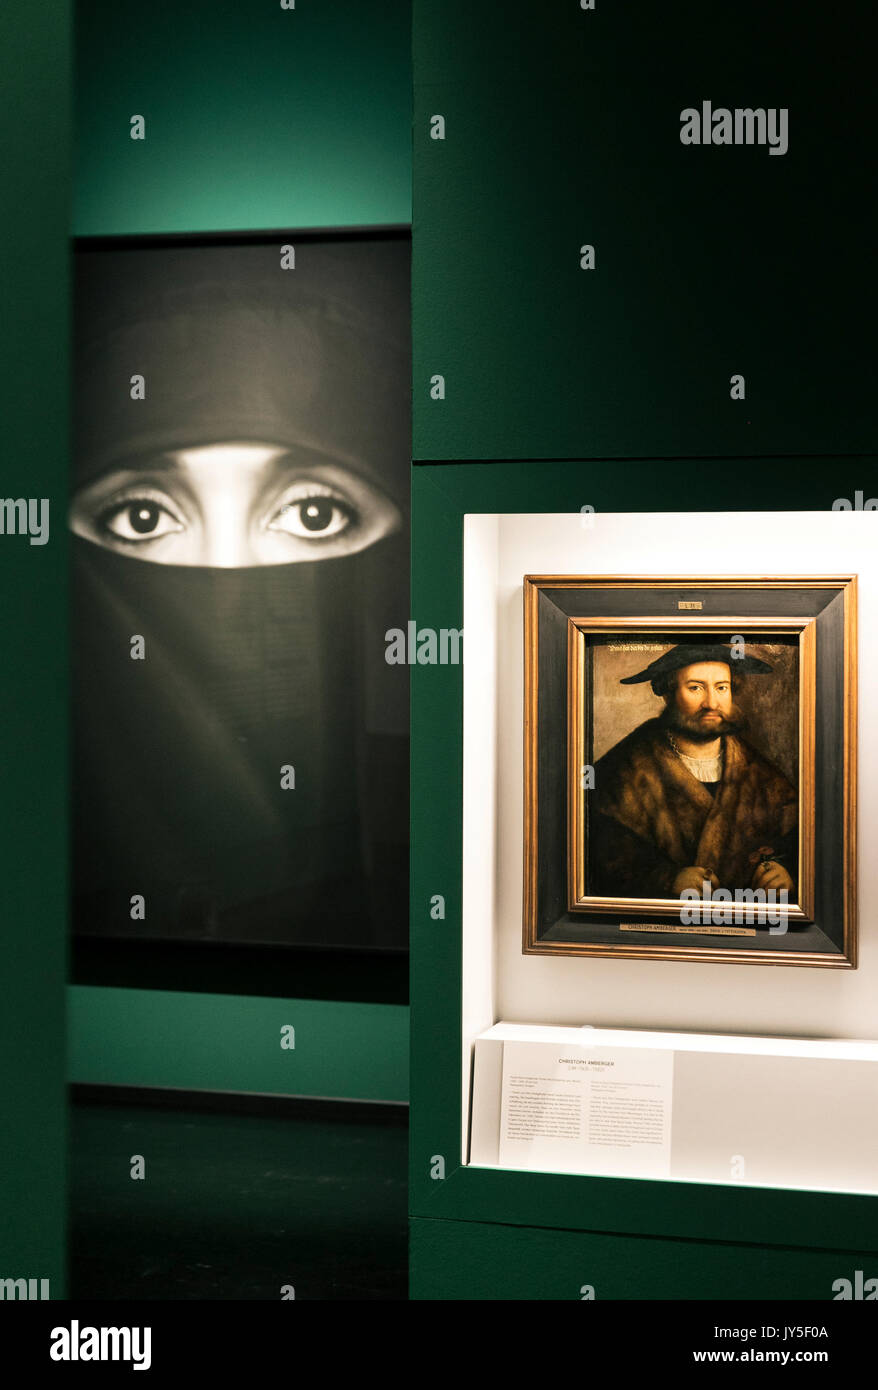 Dresden, Germany. 17th Aug, 2017. The pictures 'Untitled (Hanane in a Burka)' (2010) by Robert Longo (L) and the portrait 'David Dettigkhofer' (1577) by Christoph Amberger photographed in an exhibition room of the new exhibition 'The face. A search for clues' ('Das Gesicht. Eine Spurensuche') in the German Hygiene Museum in Dresden, Germany, 17 August 2017. The exhibition takes place between 19 August 2017 and 25 February 2018. Photo: Oliver Killig/dpa-Zentralbild/dpa/Alamy Live News - Stock Image